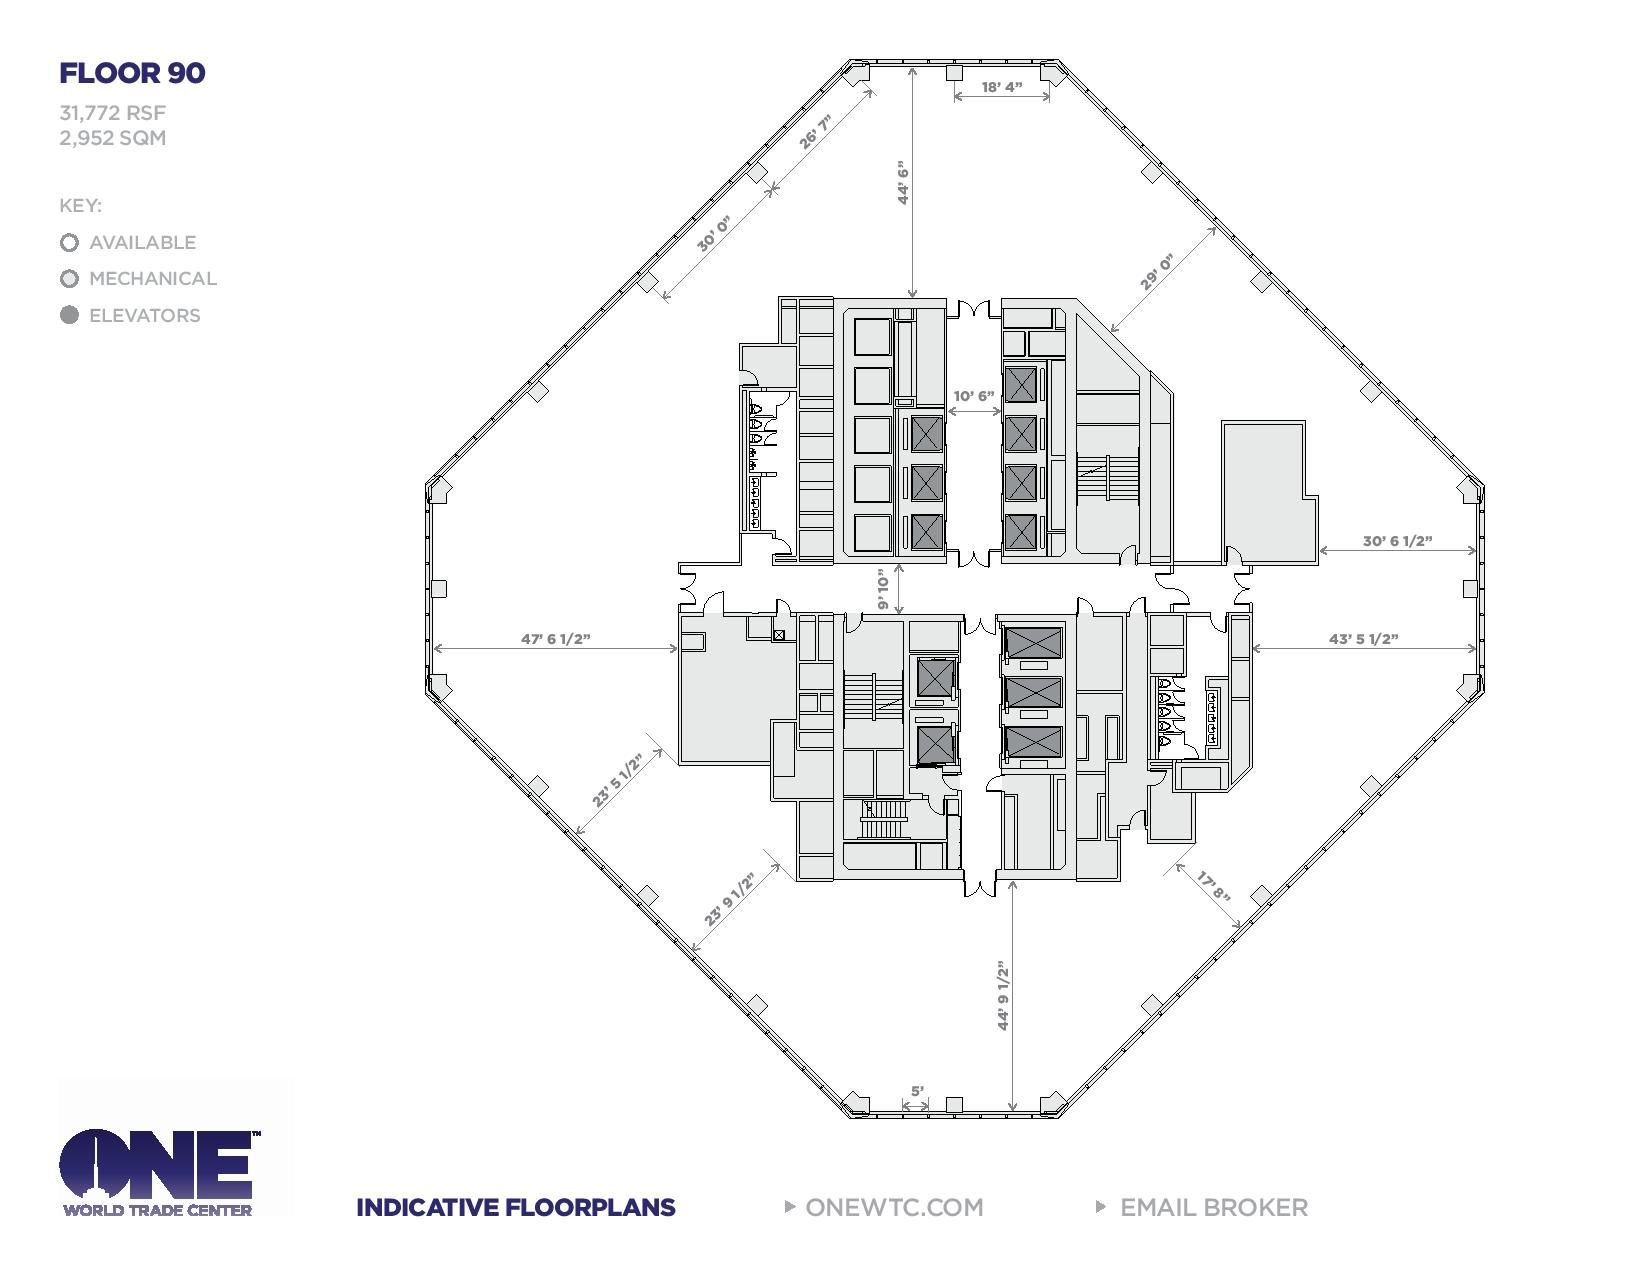 one world trade center freedom tower floor plans new one world trade center freedom tower floor plans new